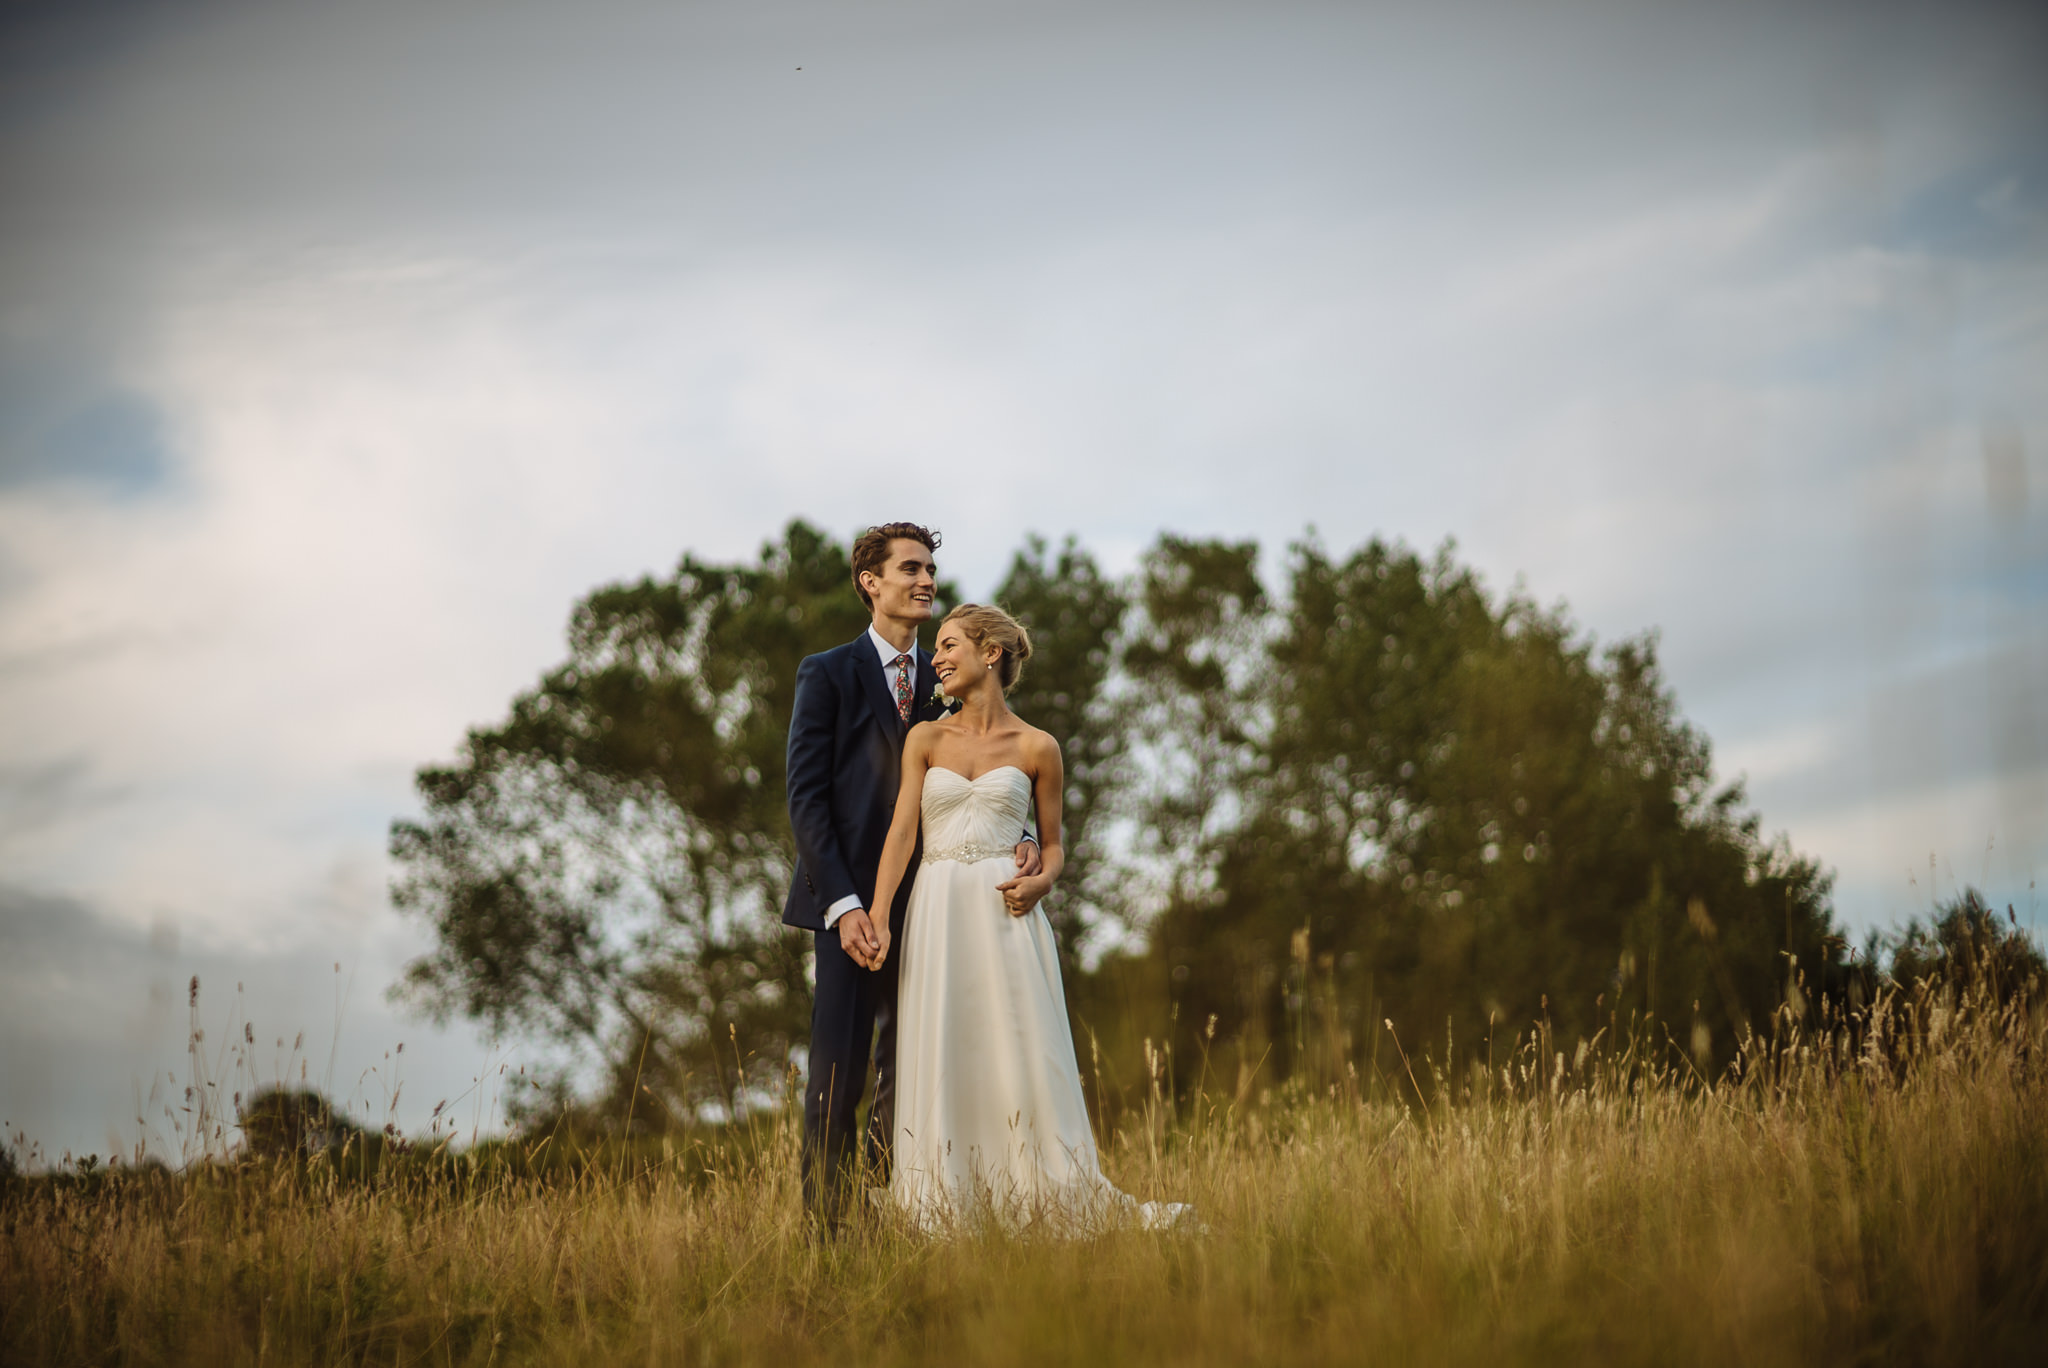 paul-marbrook-best-wedding-photographer-north-wales-133010